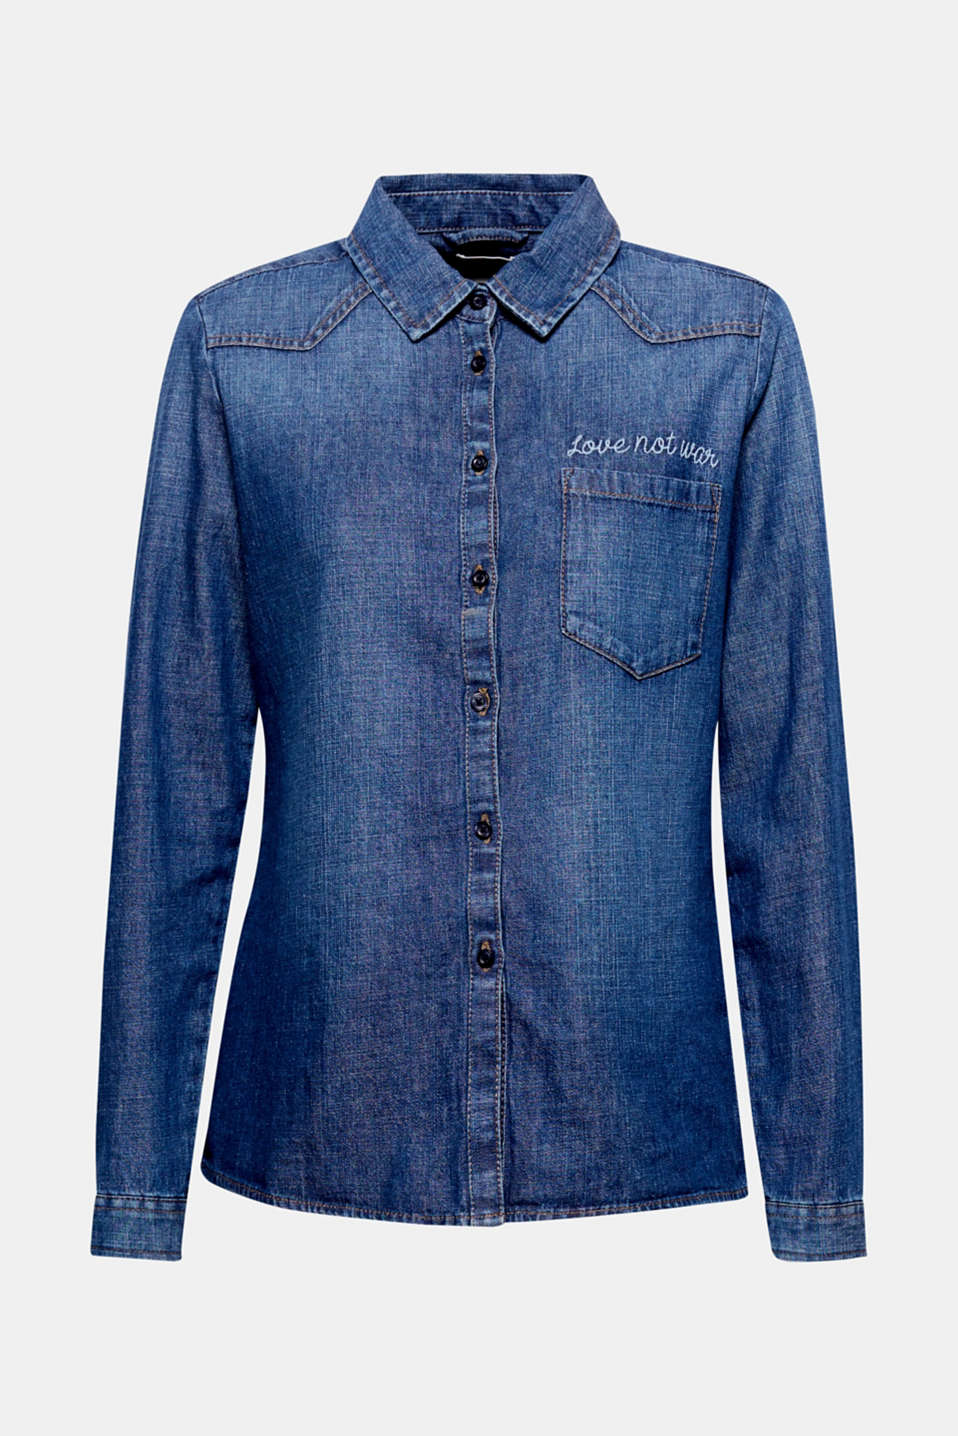 Statement embroidery over the patch breast pocket adds eye-catching style to this fitted denim blouse!